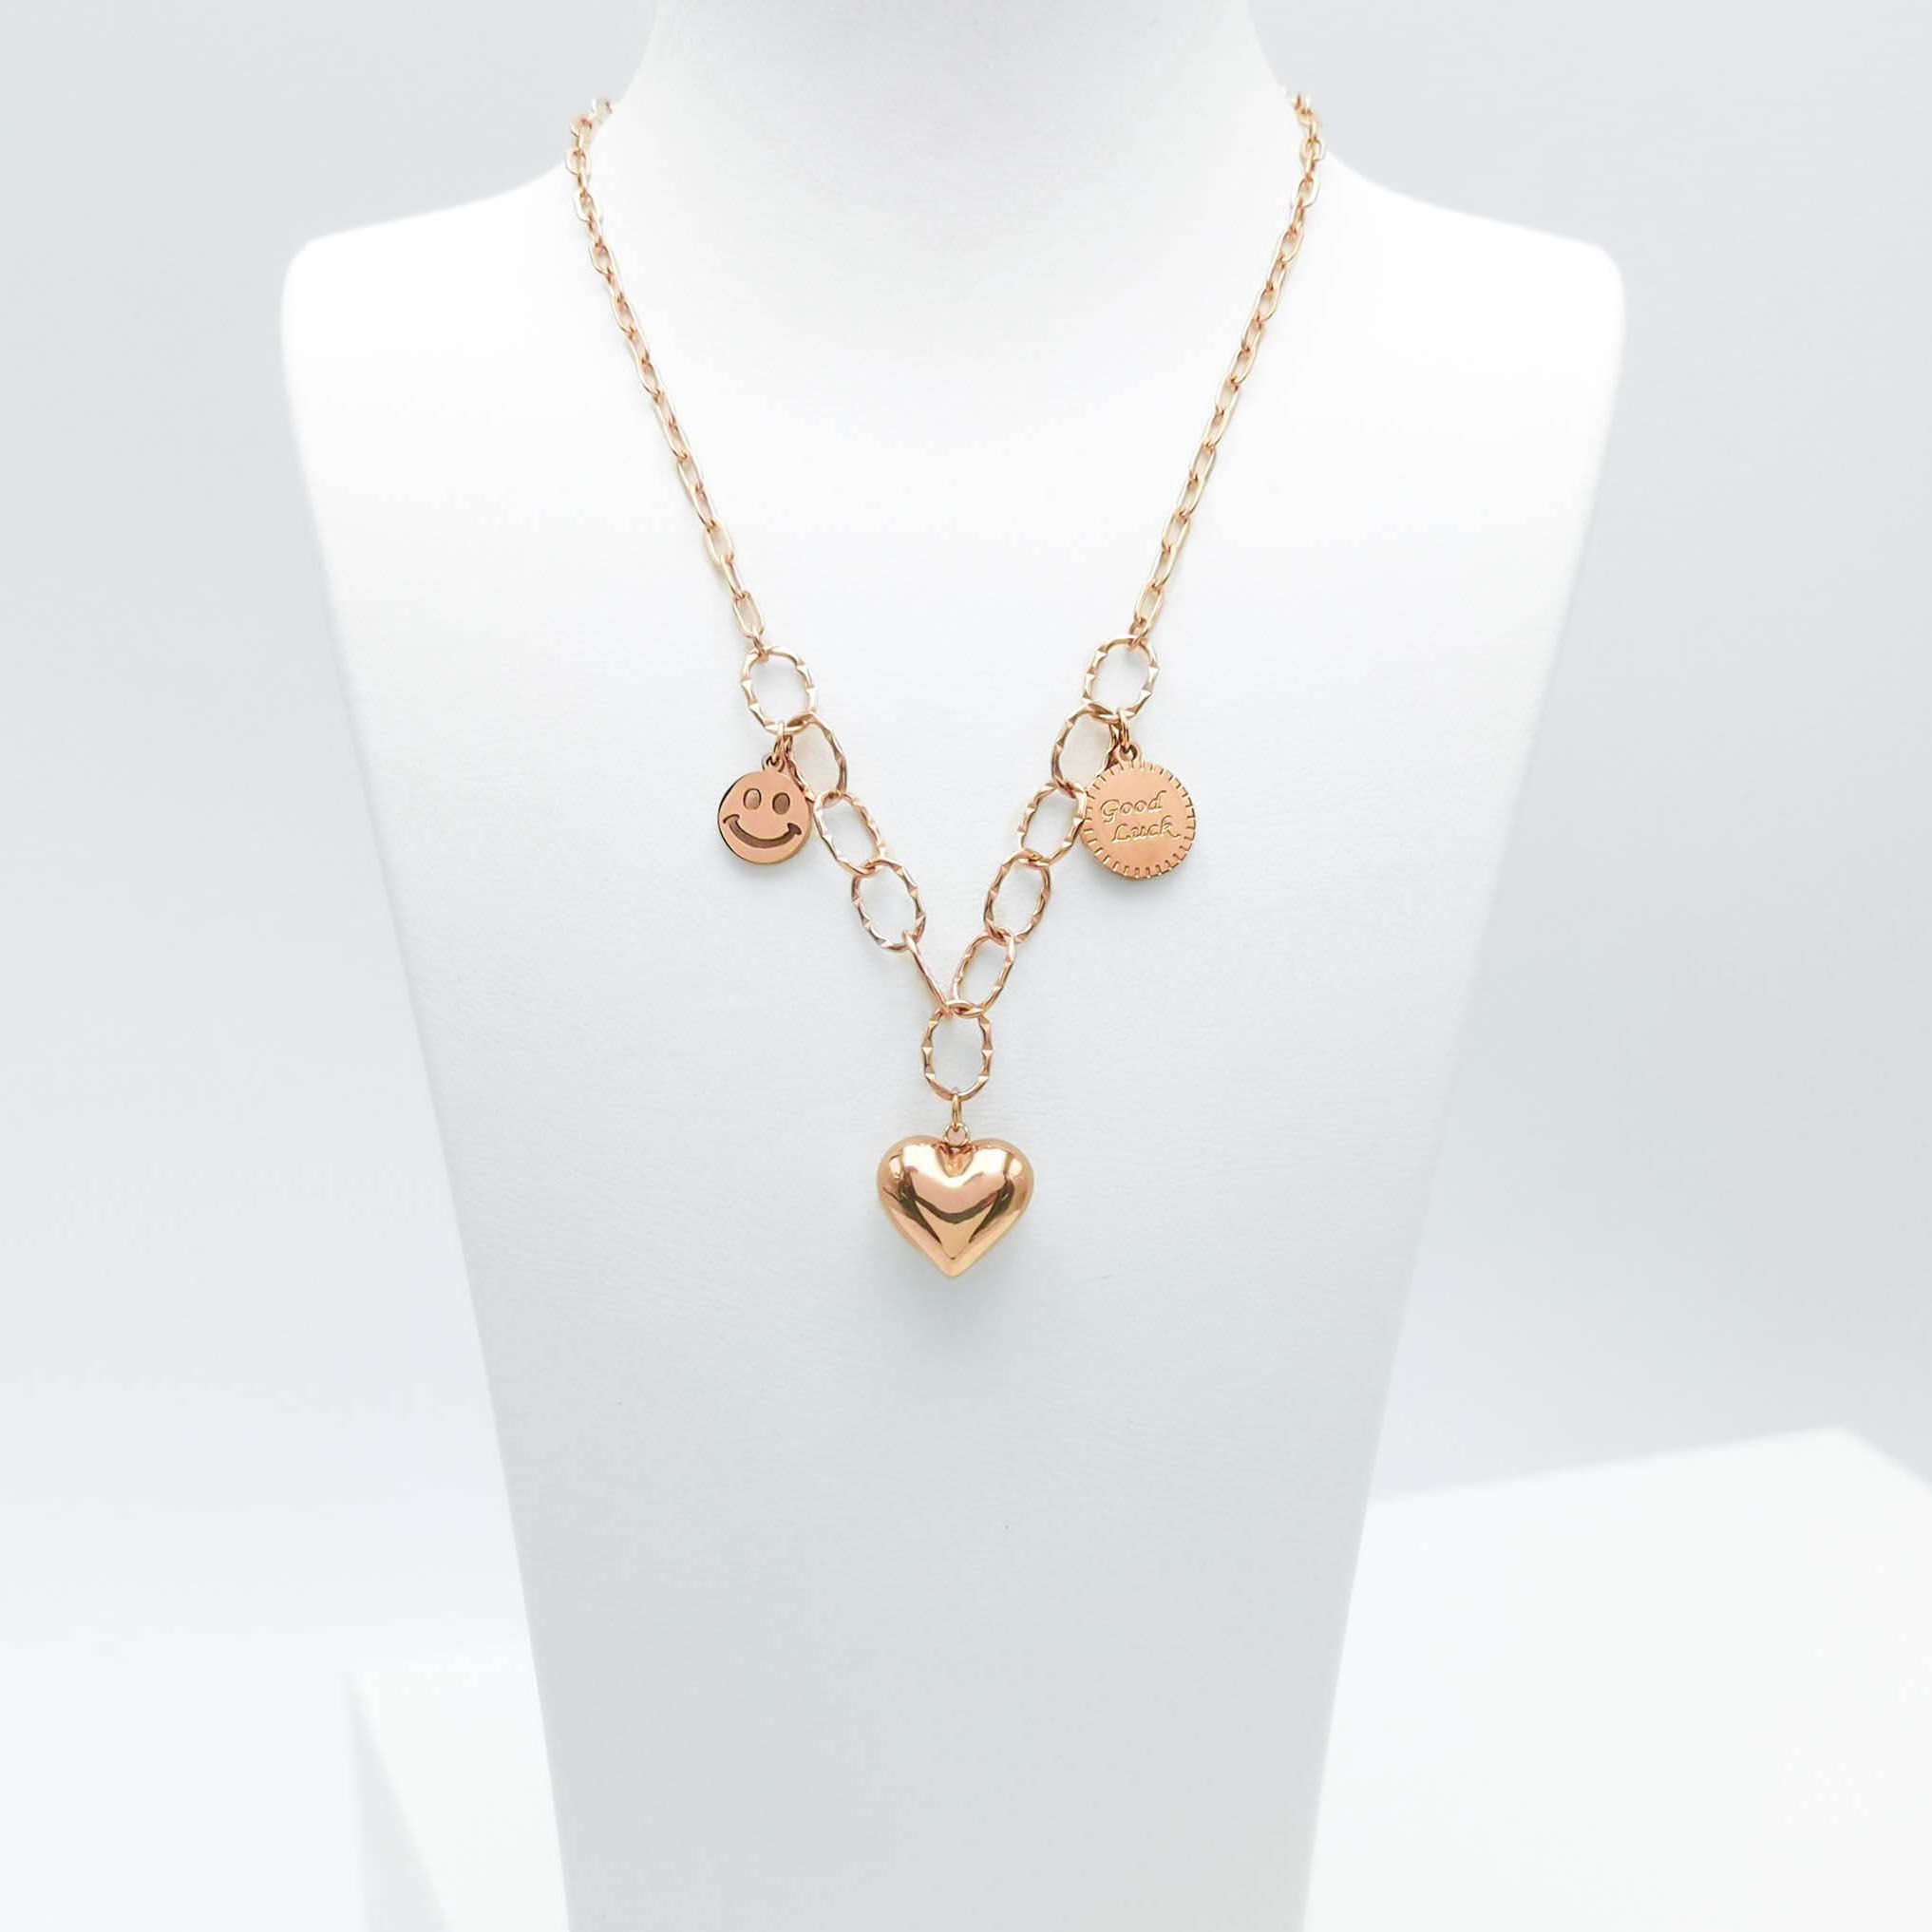 1- Full of Life Rose Gold Edition Halsband Modern and trendy Necklace and women jewelry and accessories from SWEVALI fashion Sweden